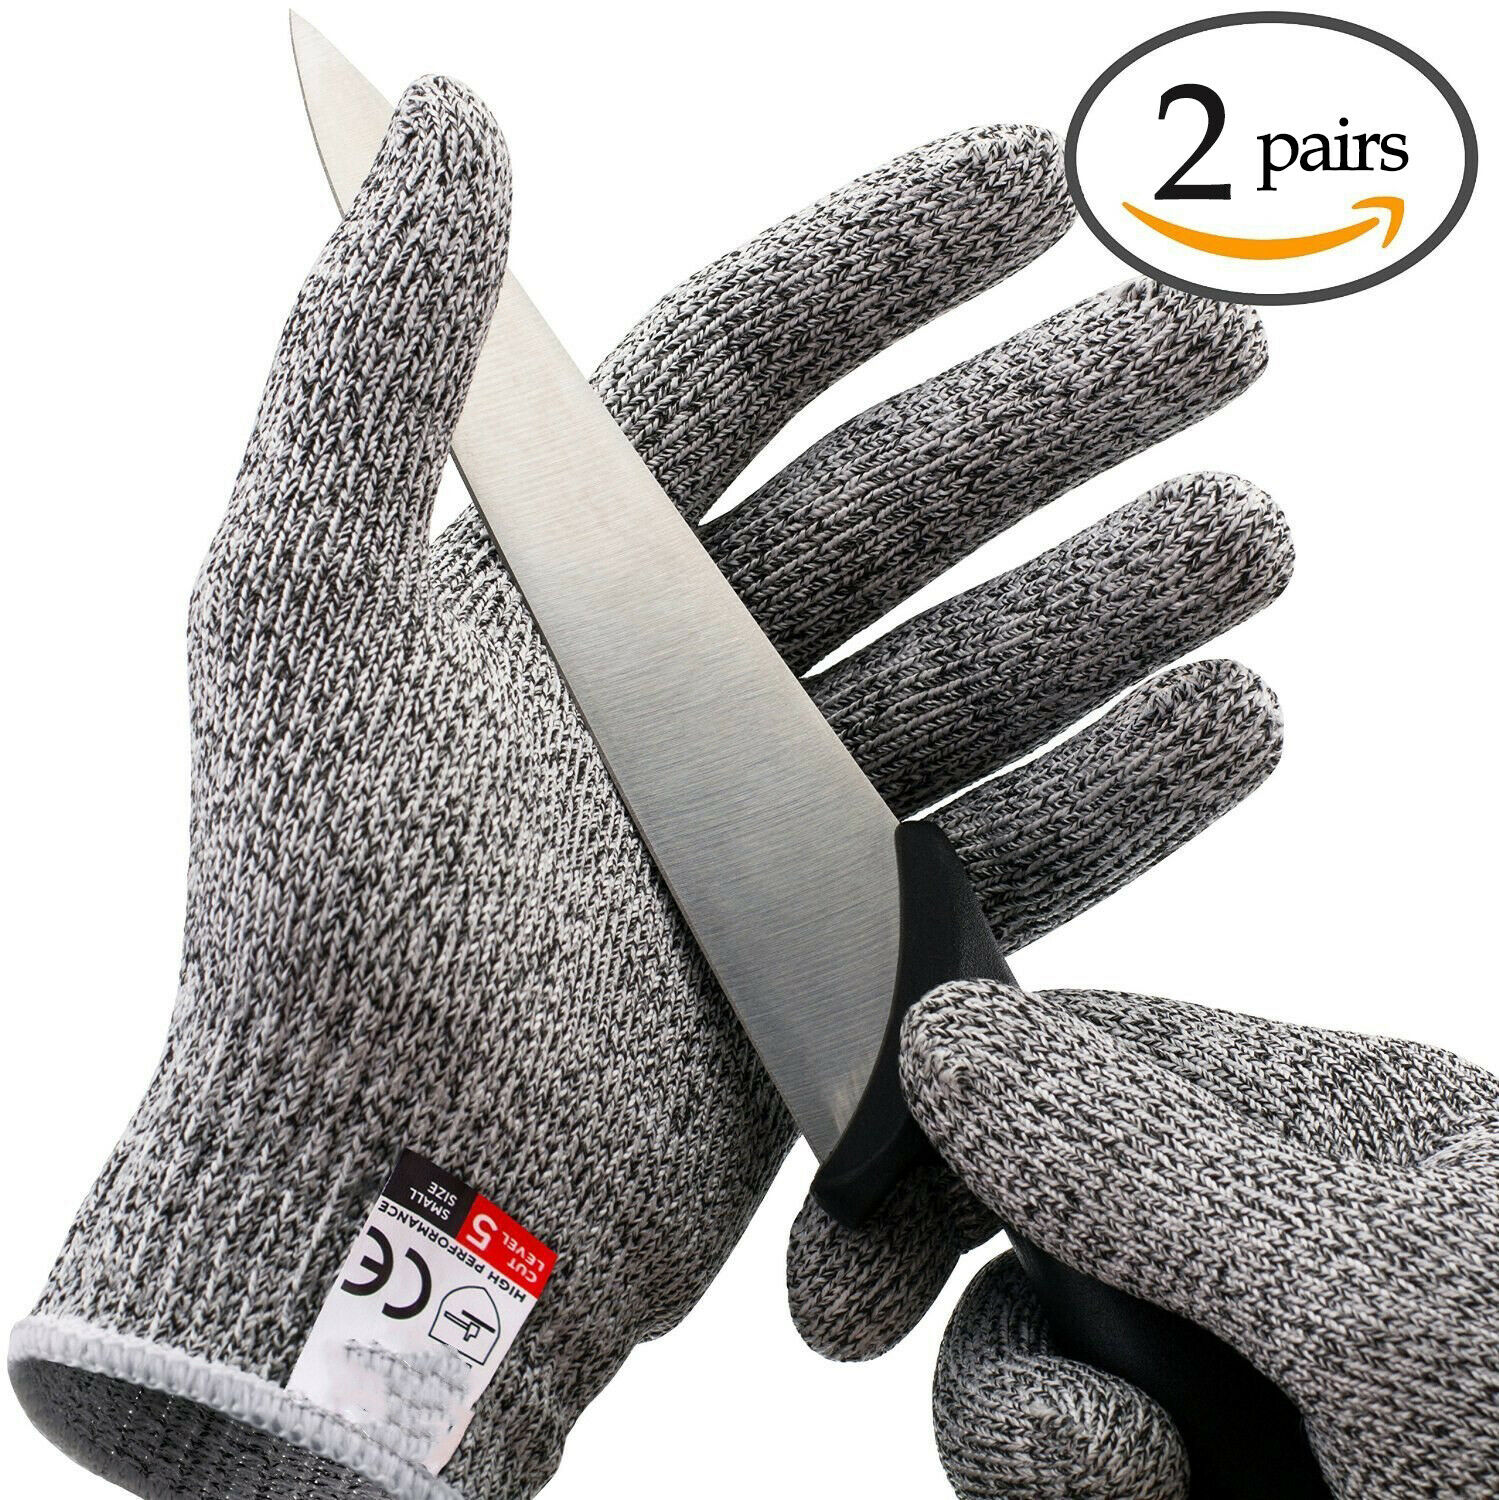 2pairs butcher glove cut proof stab resistant